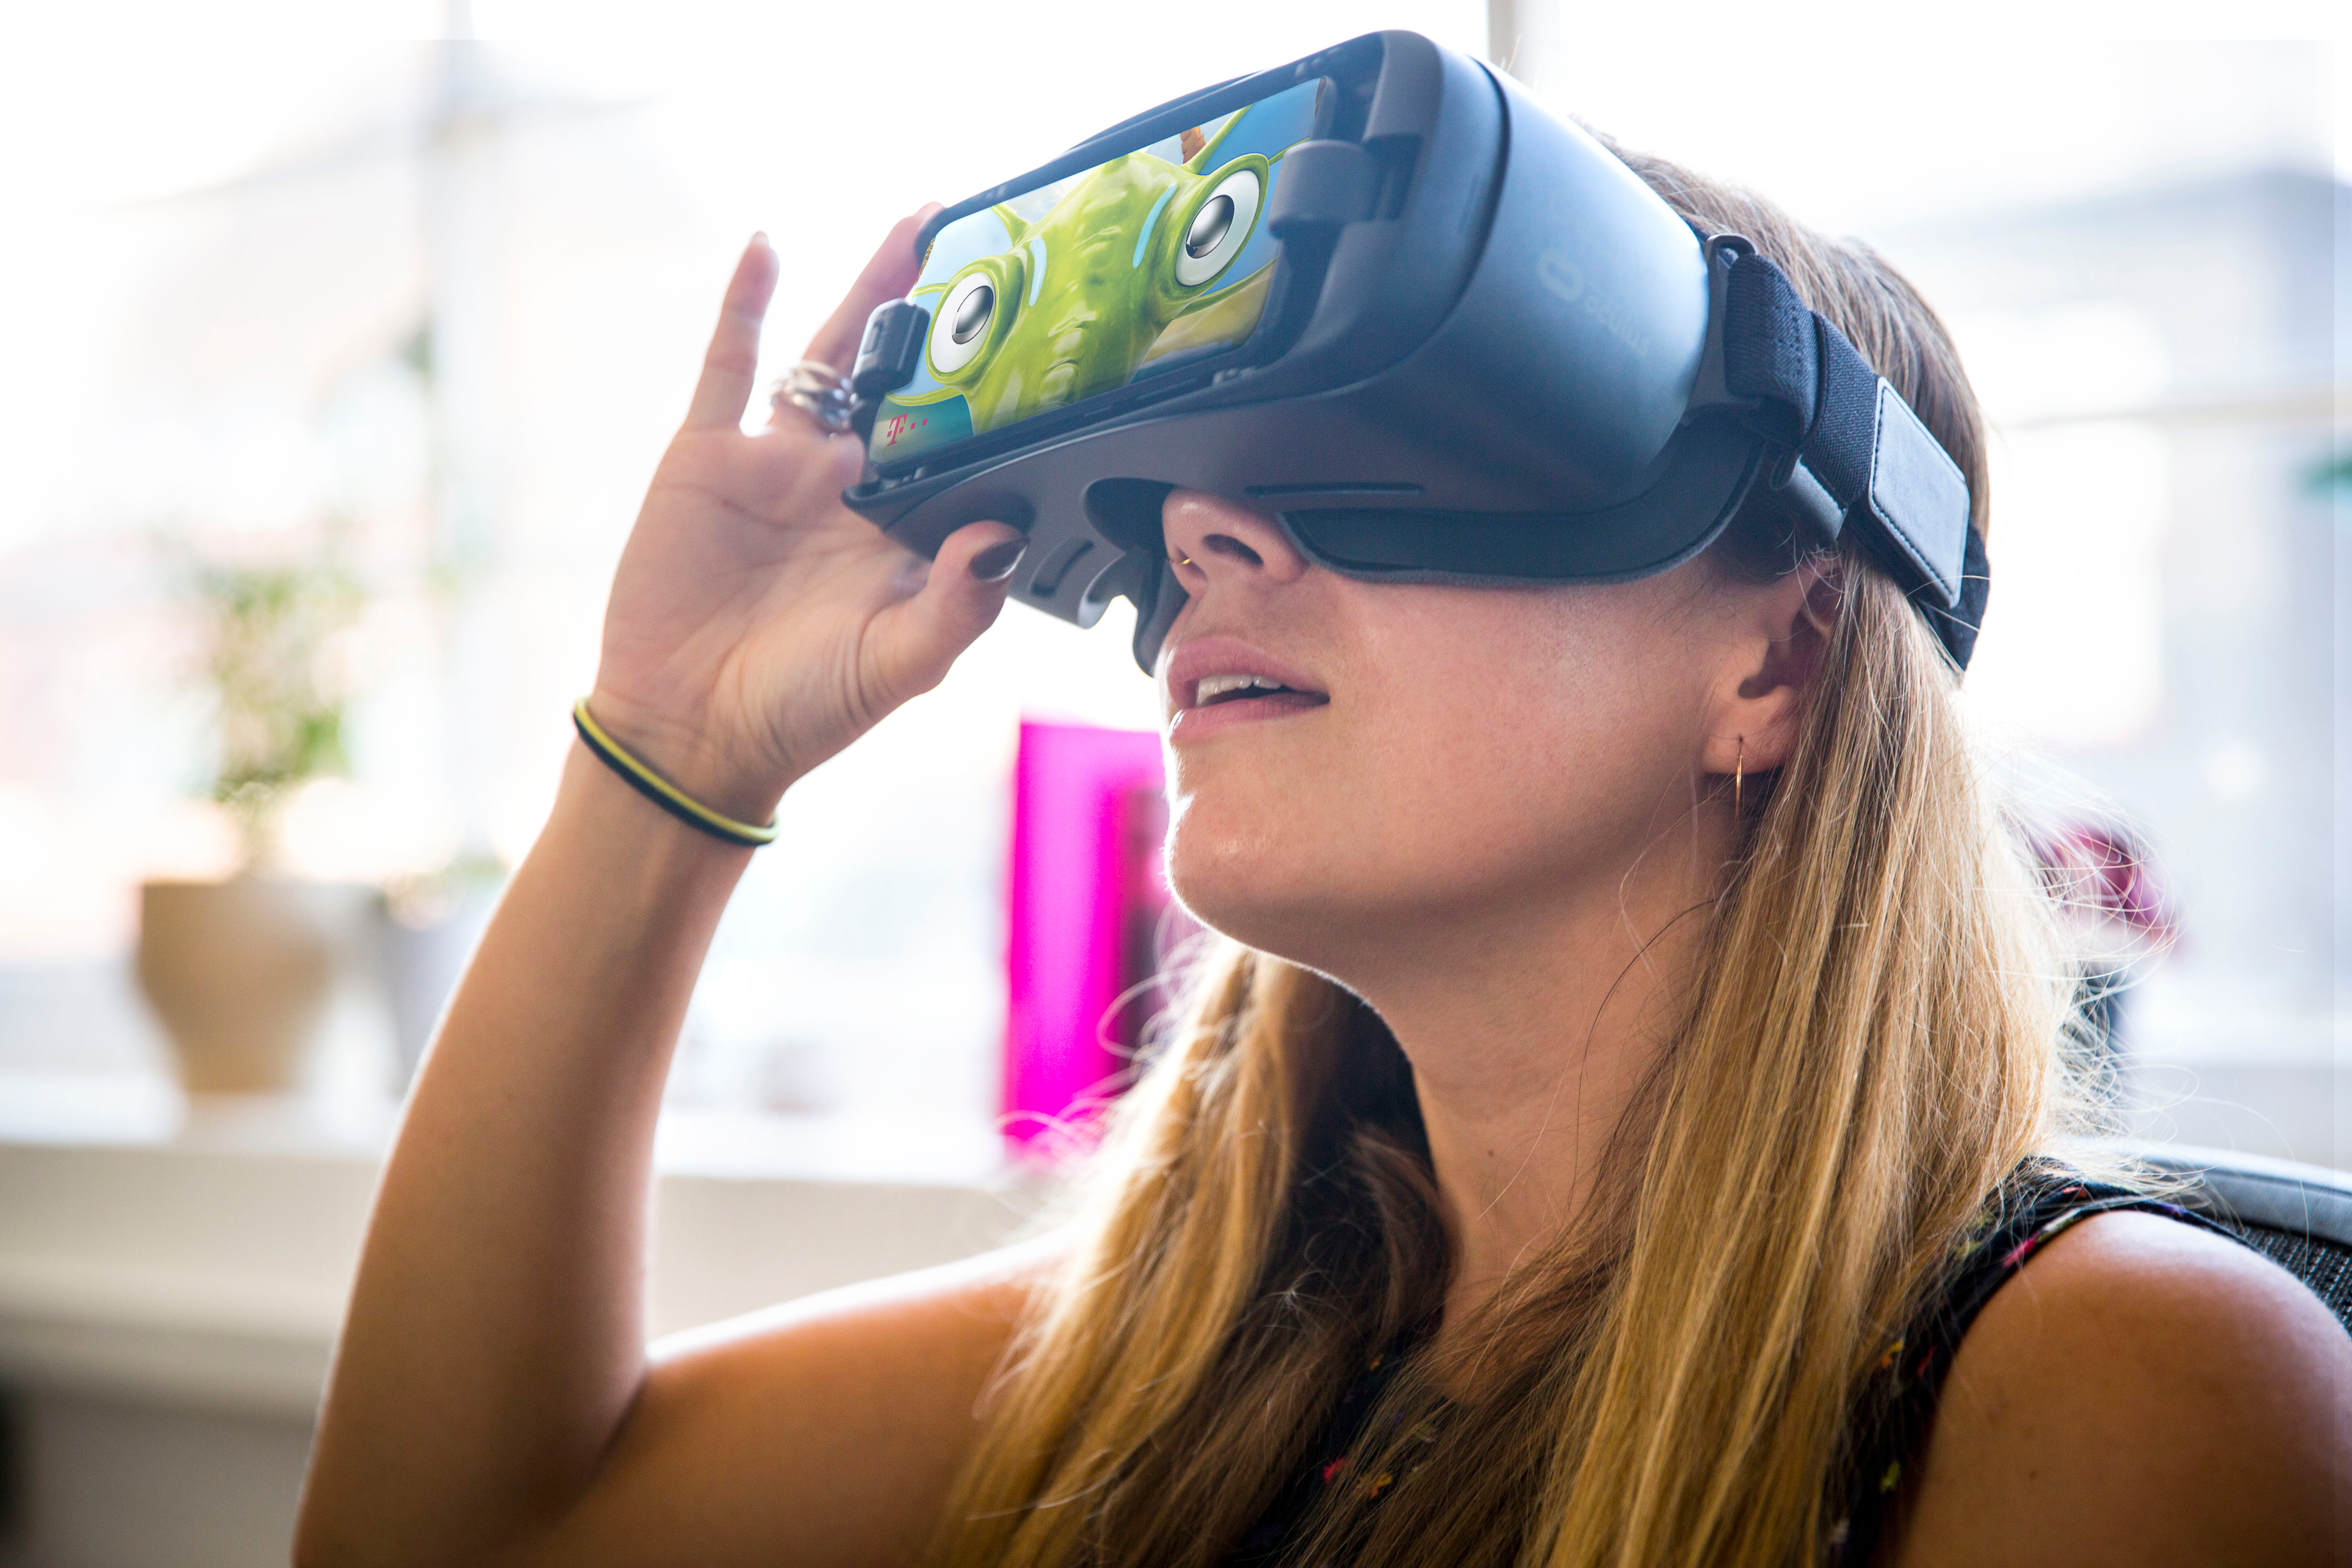 A girl plays the VR game Sea Hero Quest.